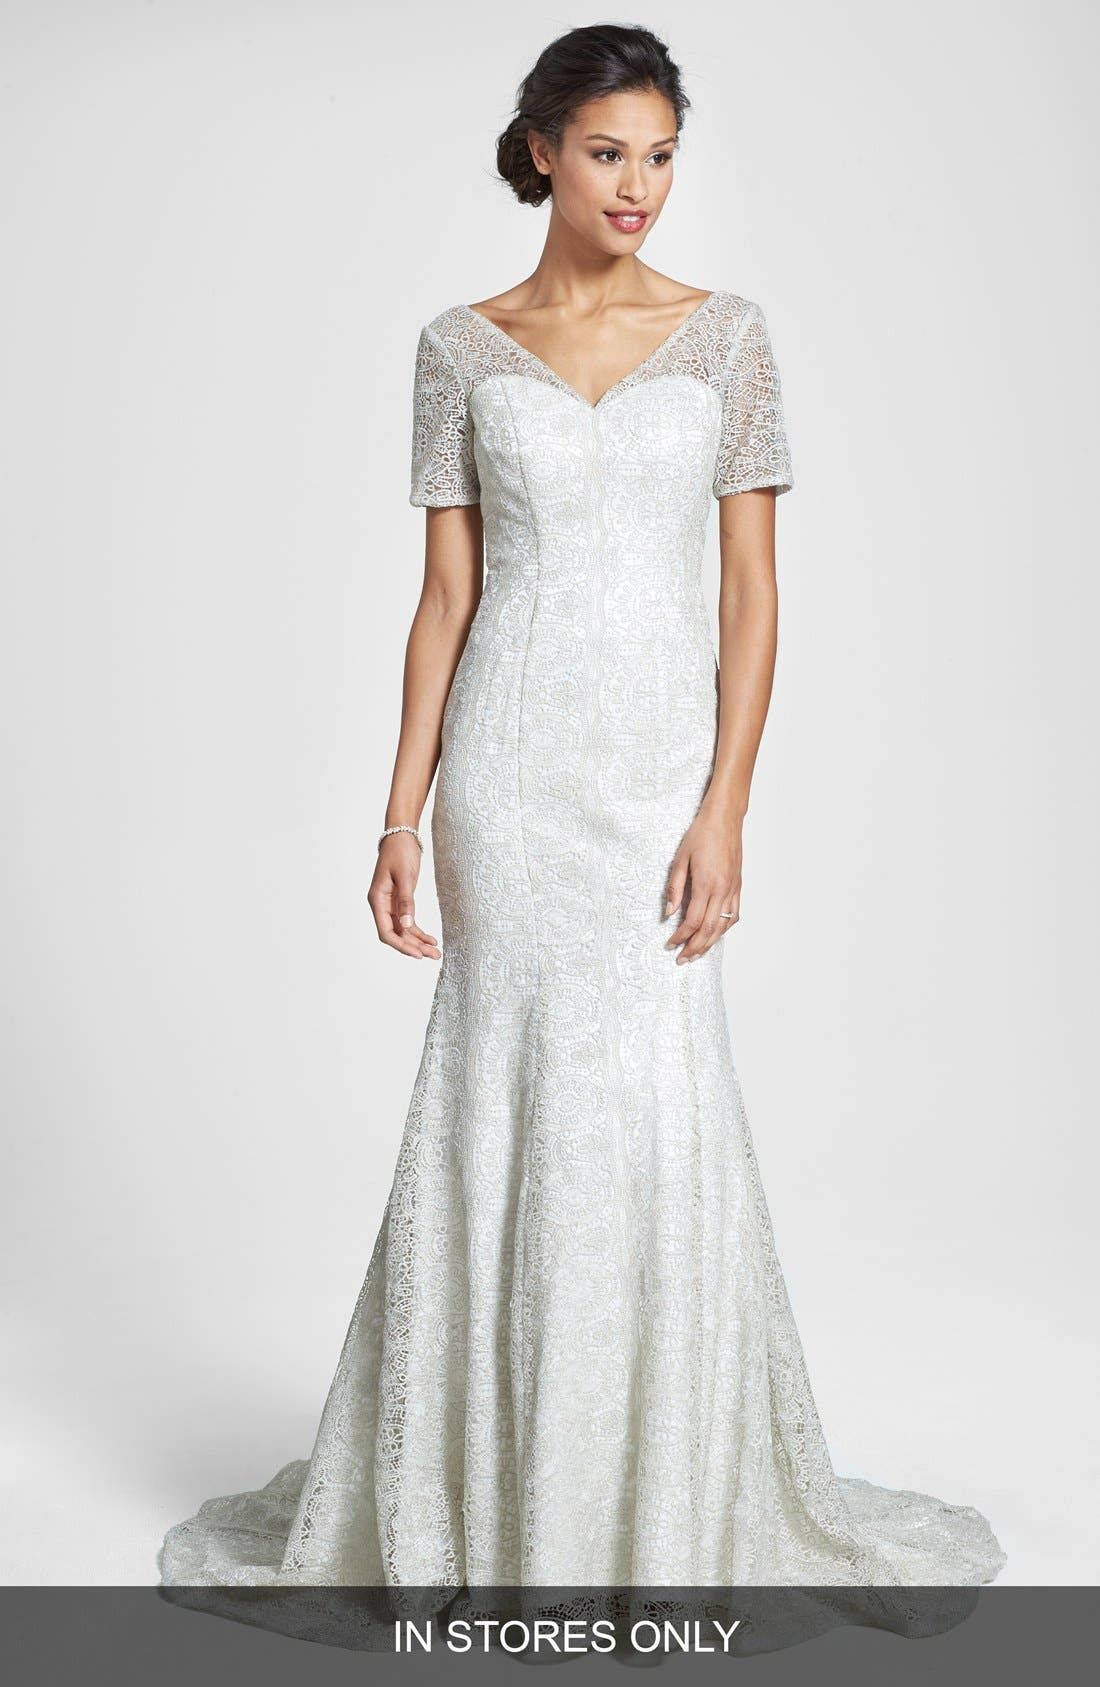 Main Image - Olia Zavozina 'Ivy' Metallic Lace Trumpet Gown (In Stores Only)